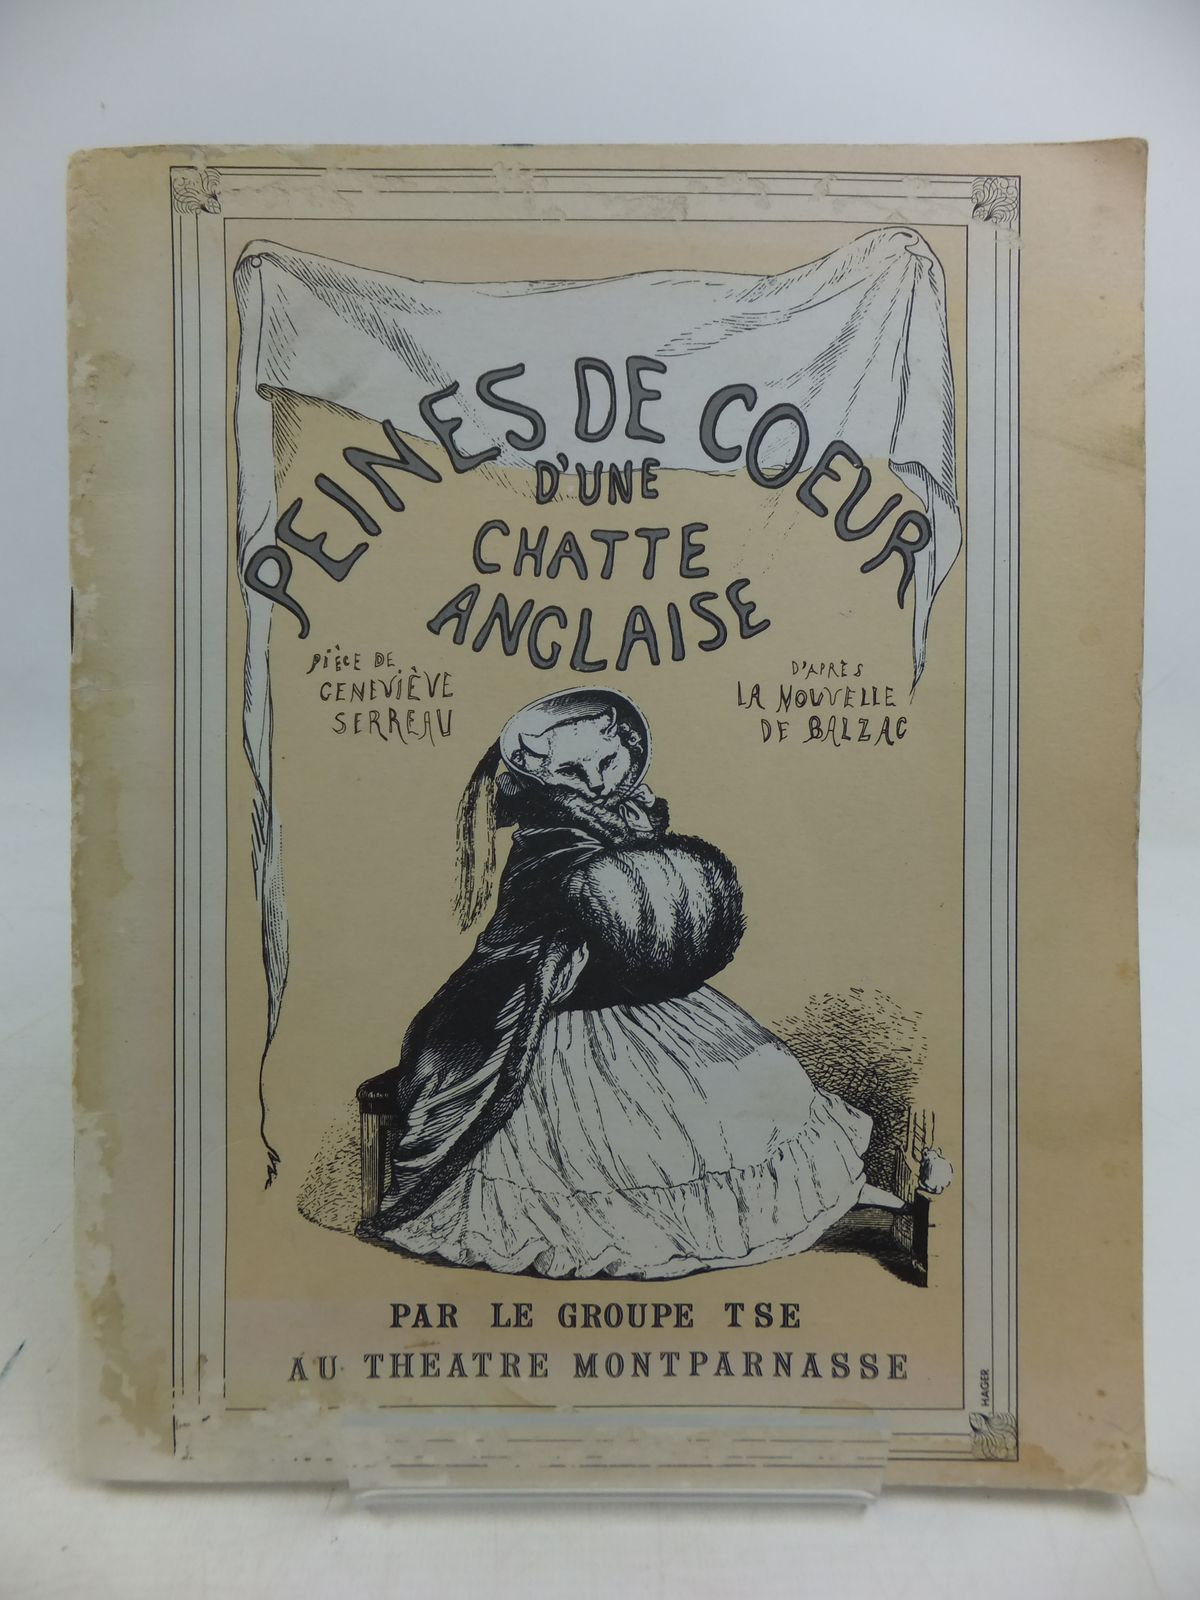 Photo of PEINES DE COEUR D'UNE CHATTE ANGLAISE written by De Balzac, Honore published by Publications Willy Fischer (STOCK CODE: 1108863)  for sale by Stella & Rose's Books